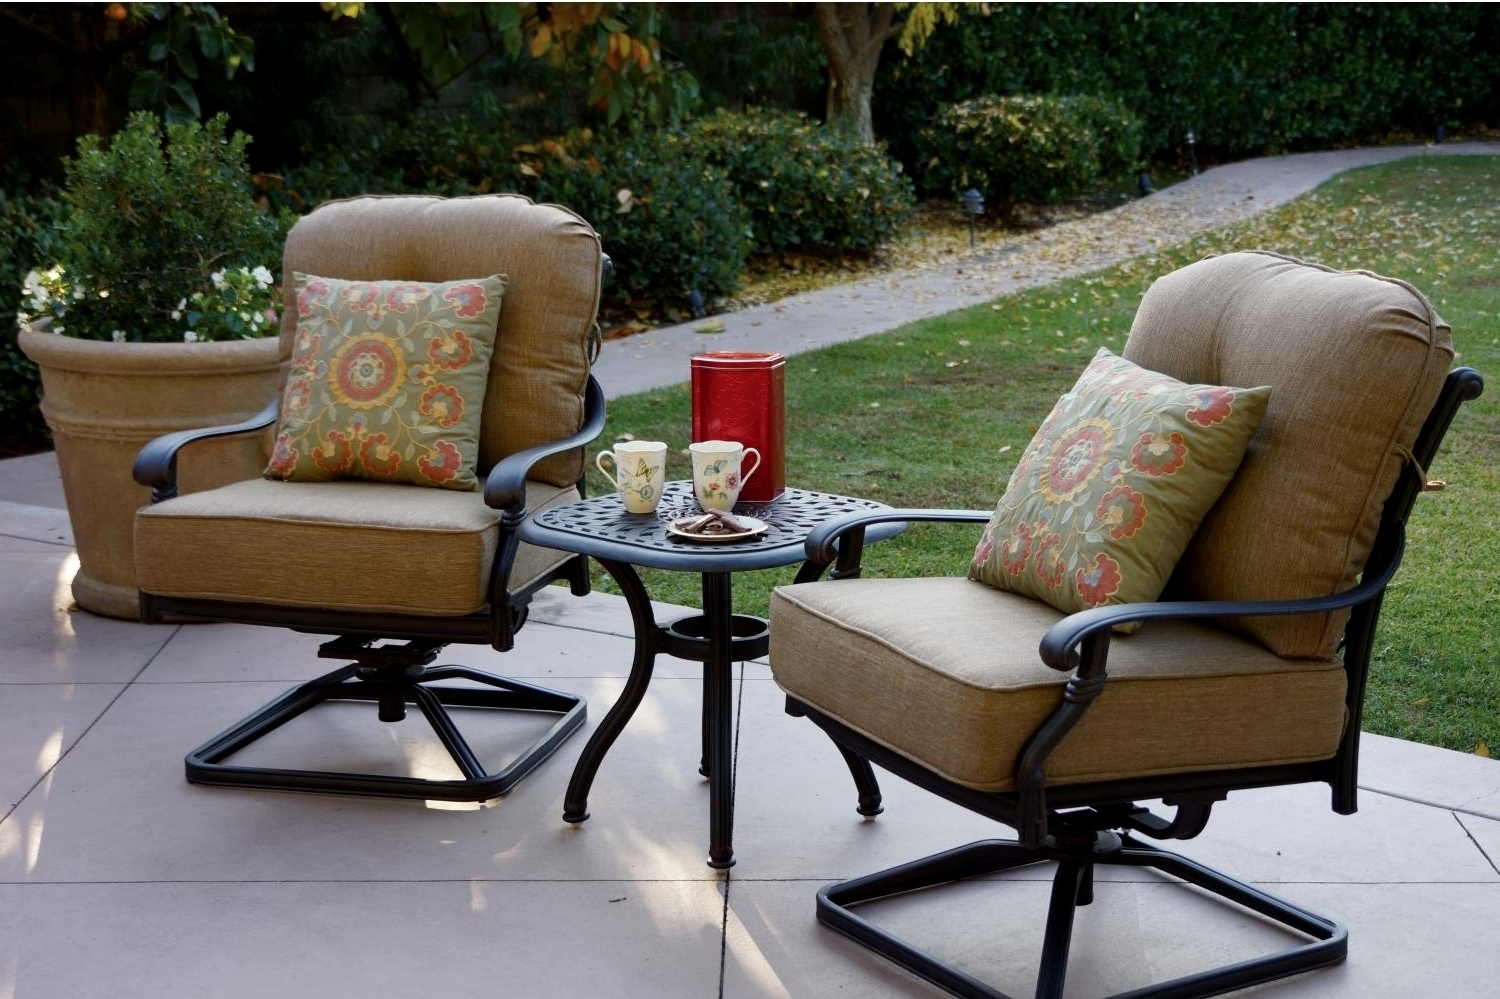 Patio Furniture Cast Aluminum Deep Seating Rocker Set Swivel Club In Favorite Outside Rocking Chair Sets (View 12 of 20)